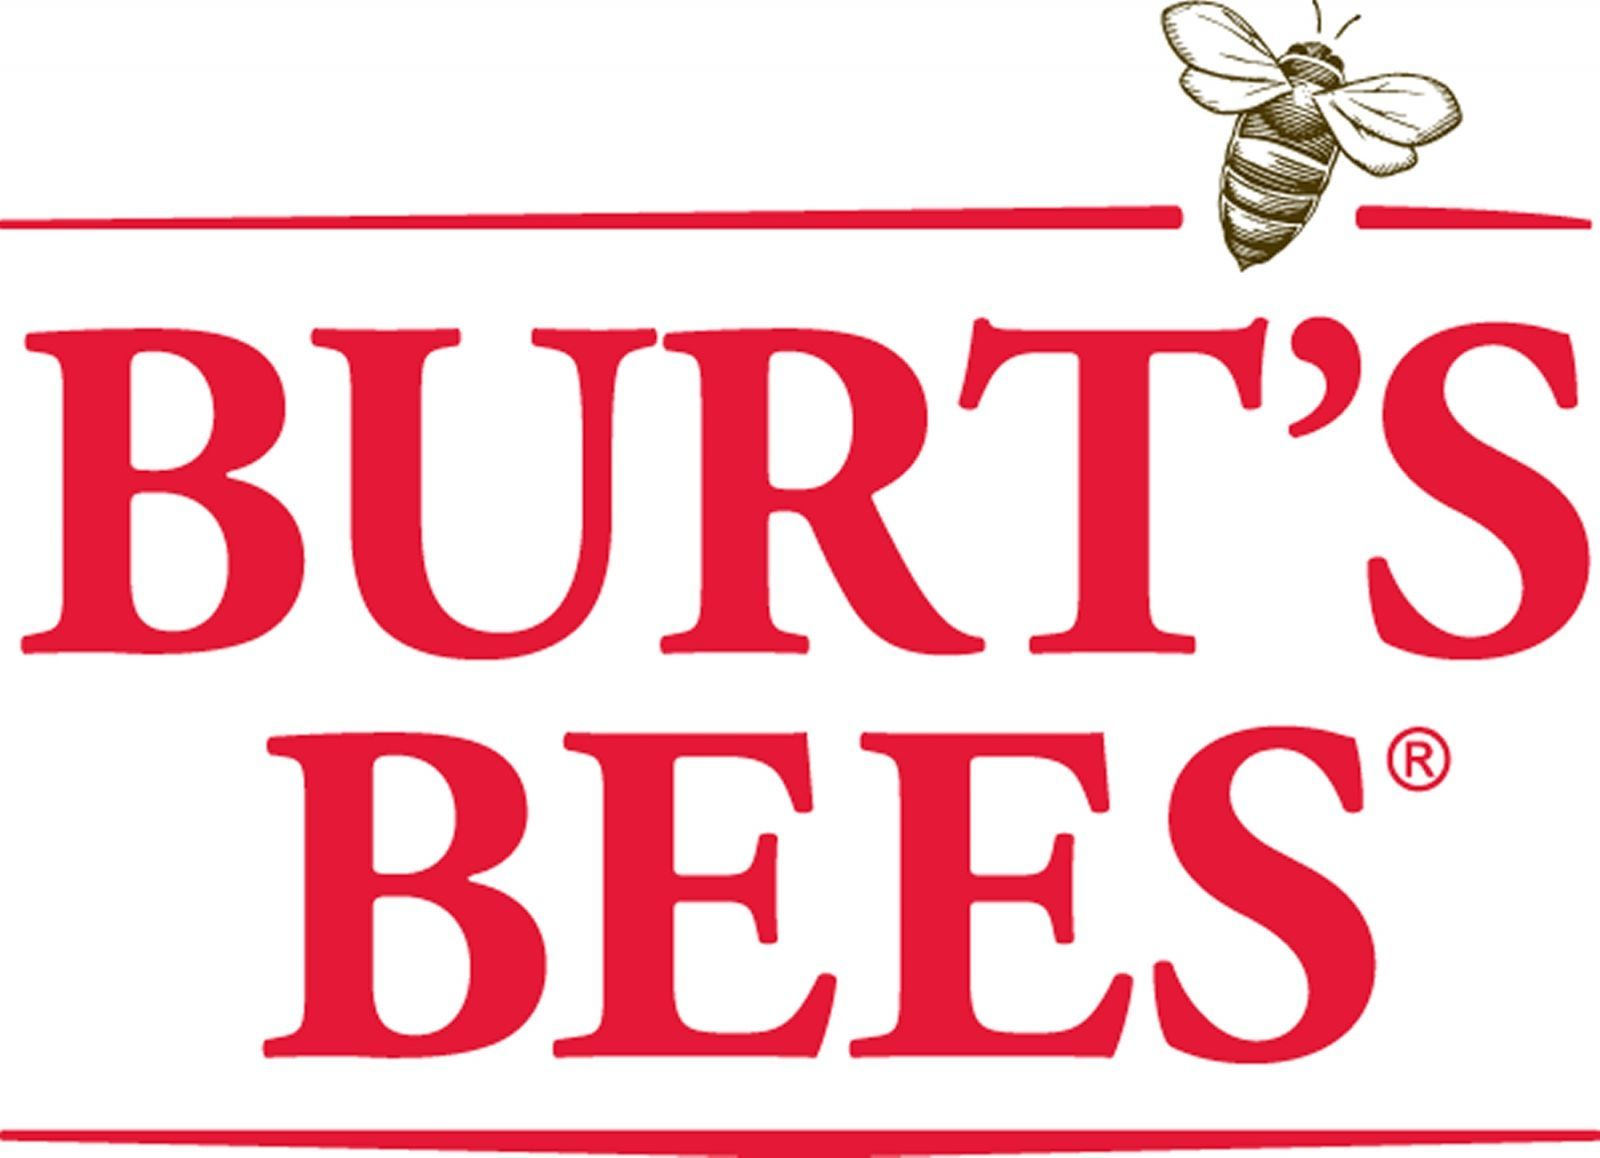 photograph about Burt's Bees Coupons Printable identify Burts-bees Coupon codes - The Krazy Coupon Woman